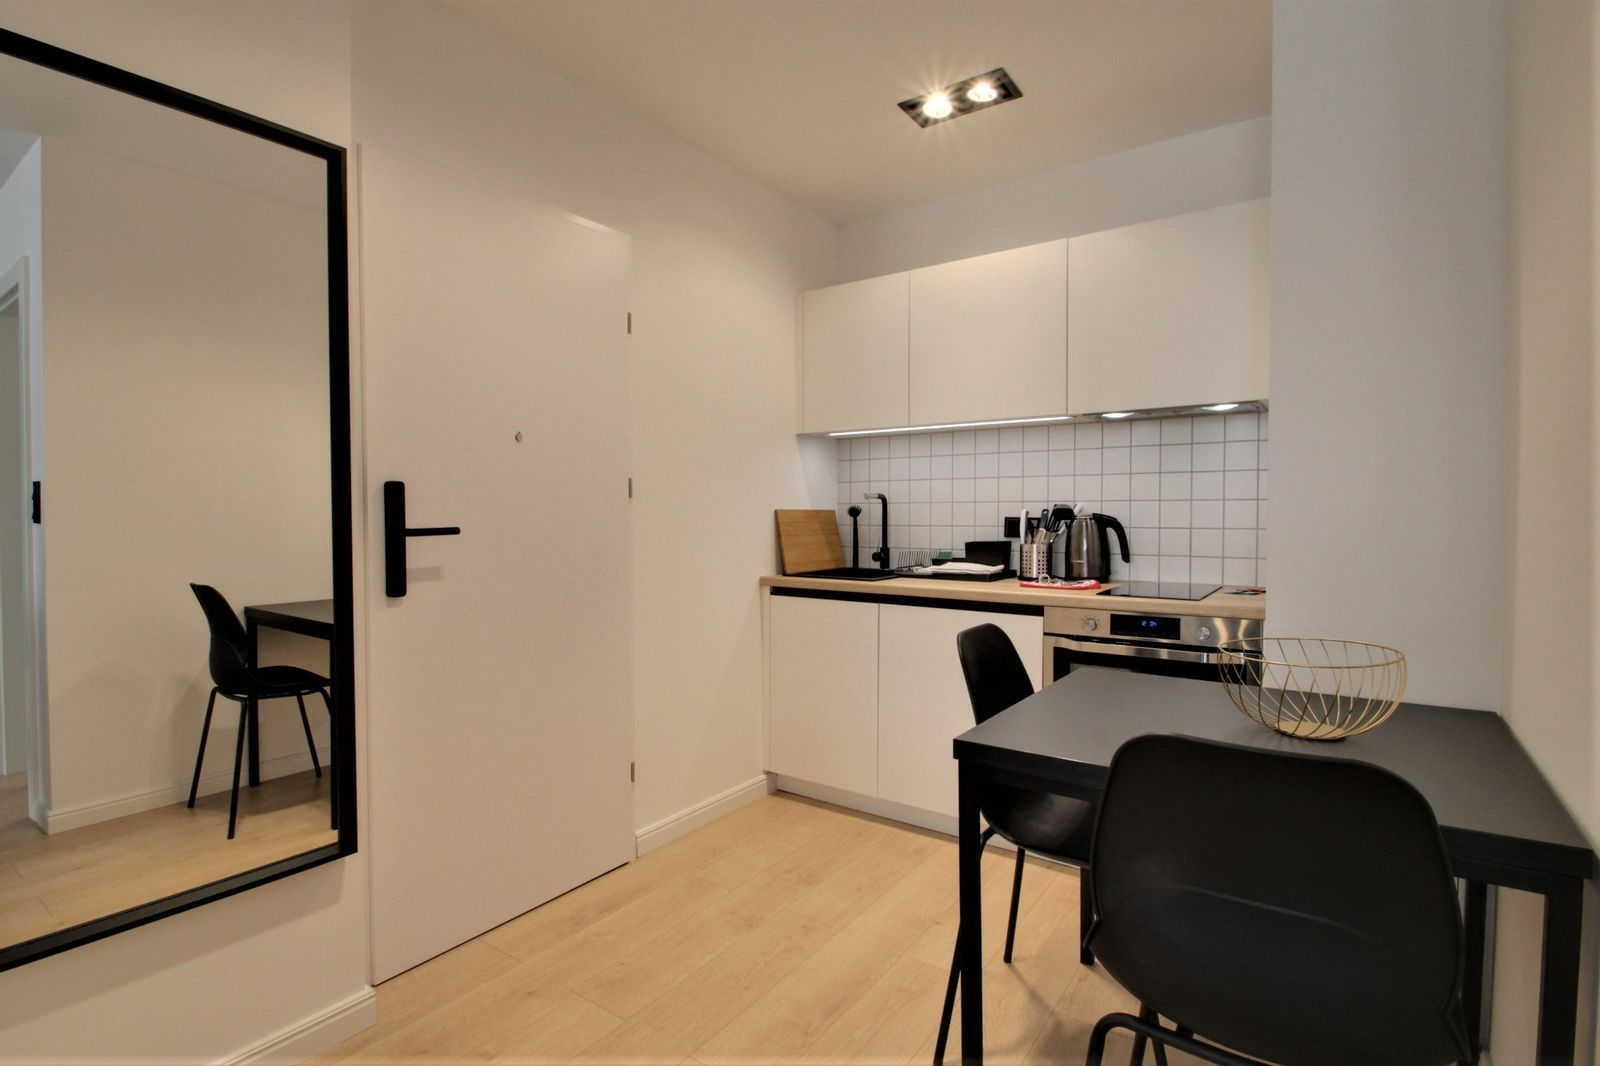 Studio - Small apartment to rent in Warsaw UPR-A-060-1